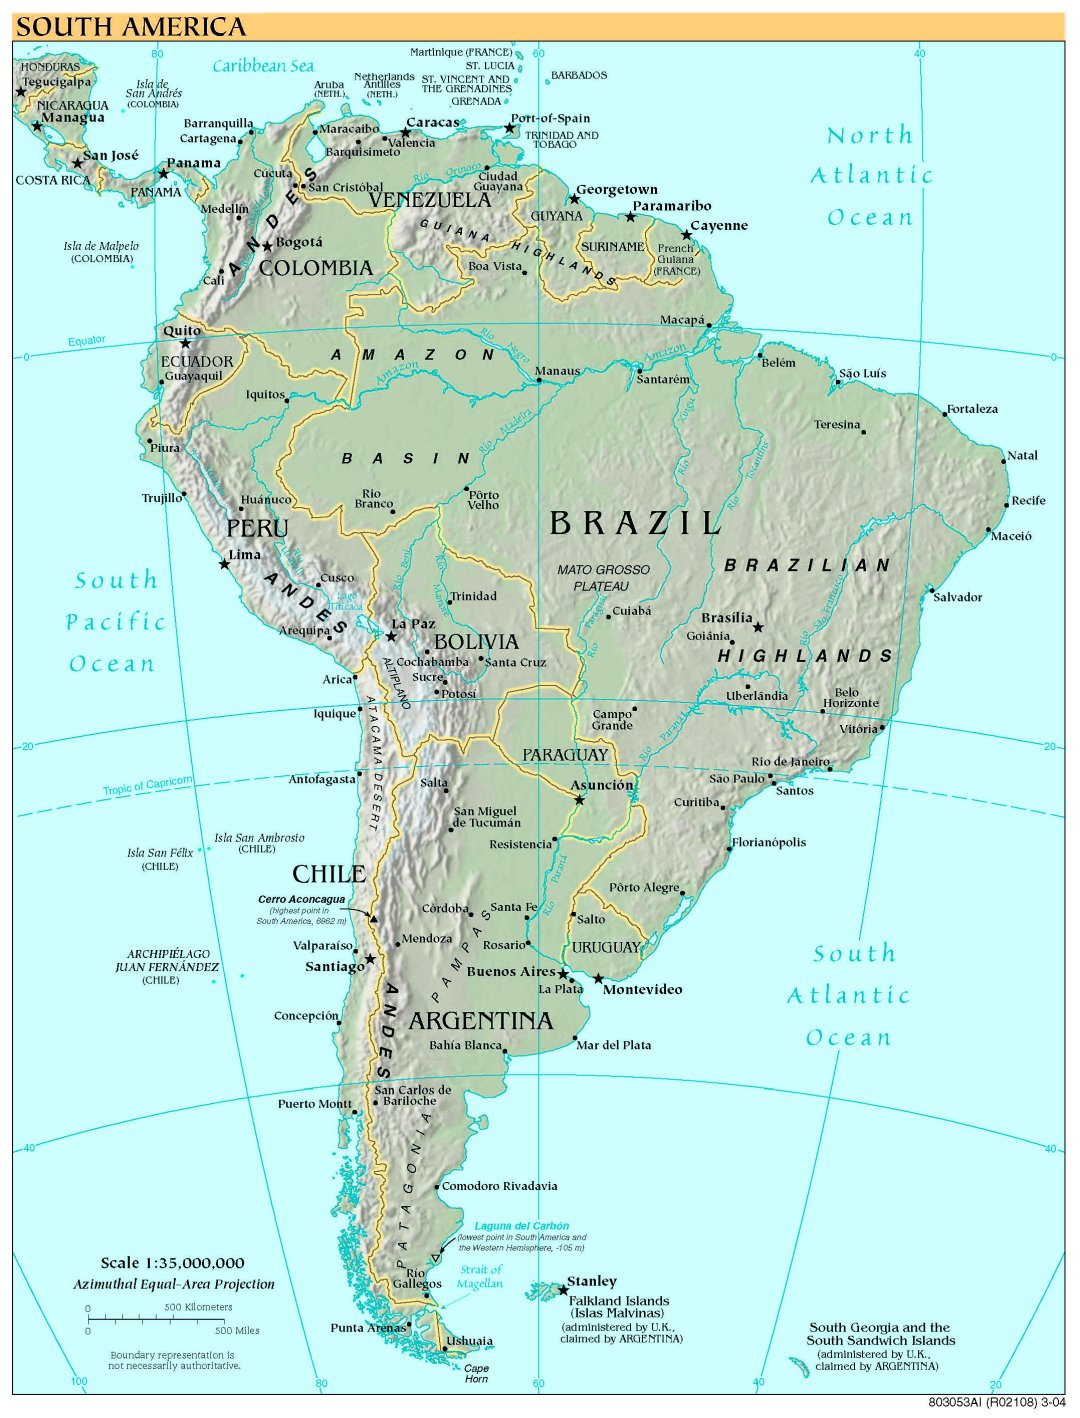 Free High Resolution Map of South America